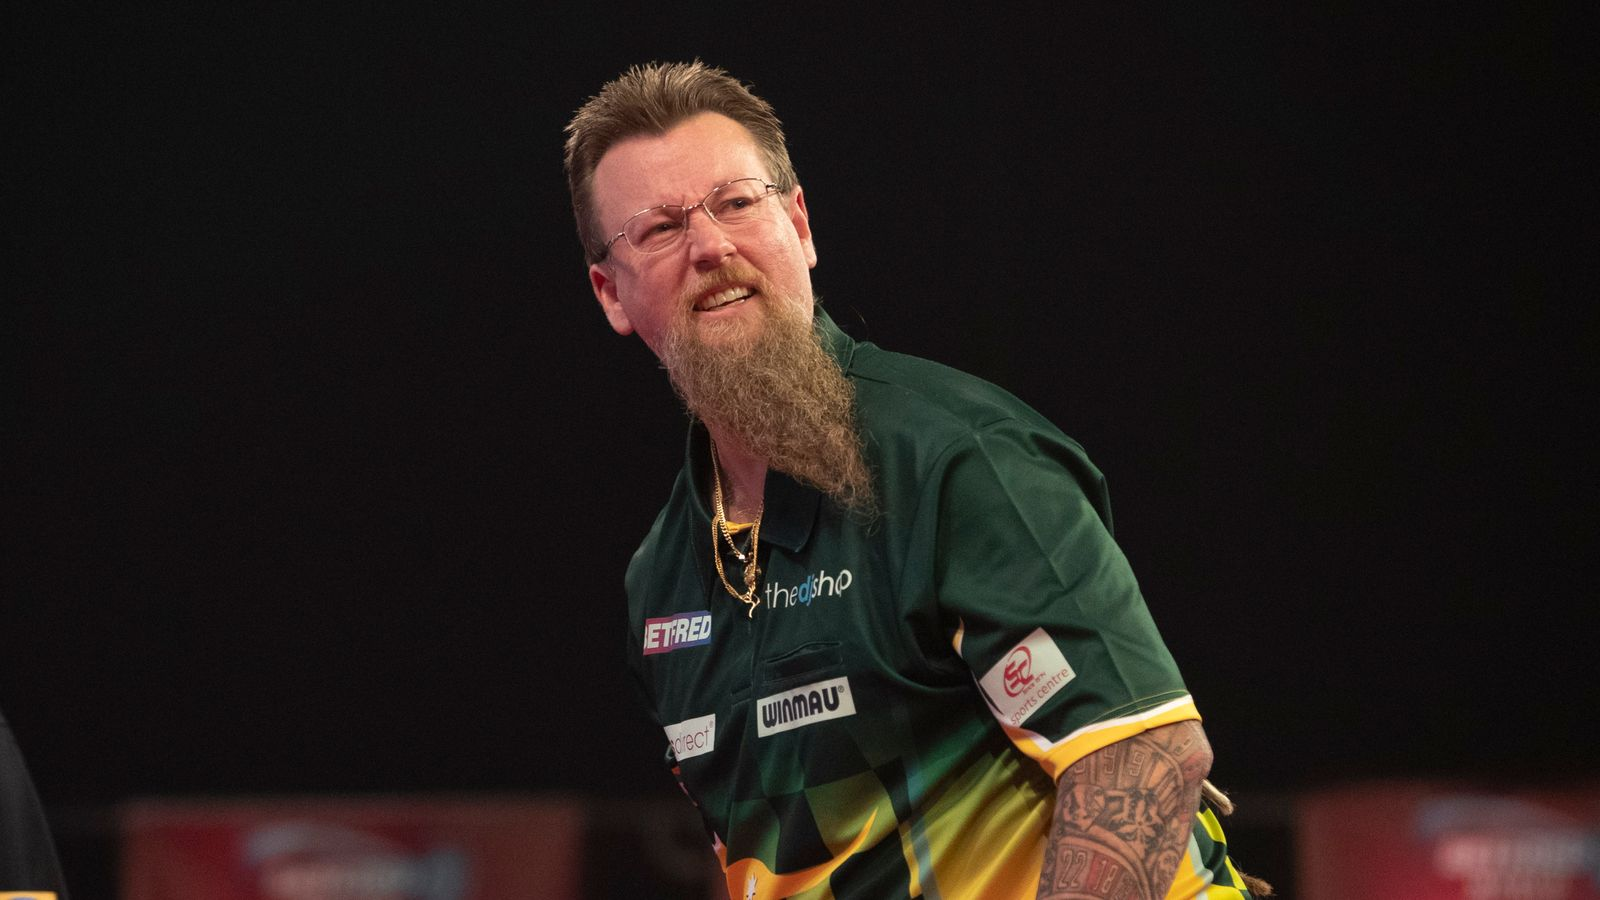 Whitlock beats Anderson to book